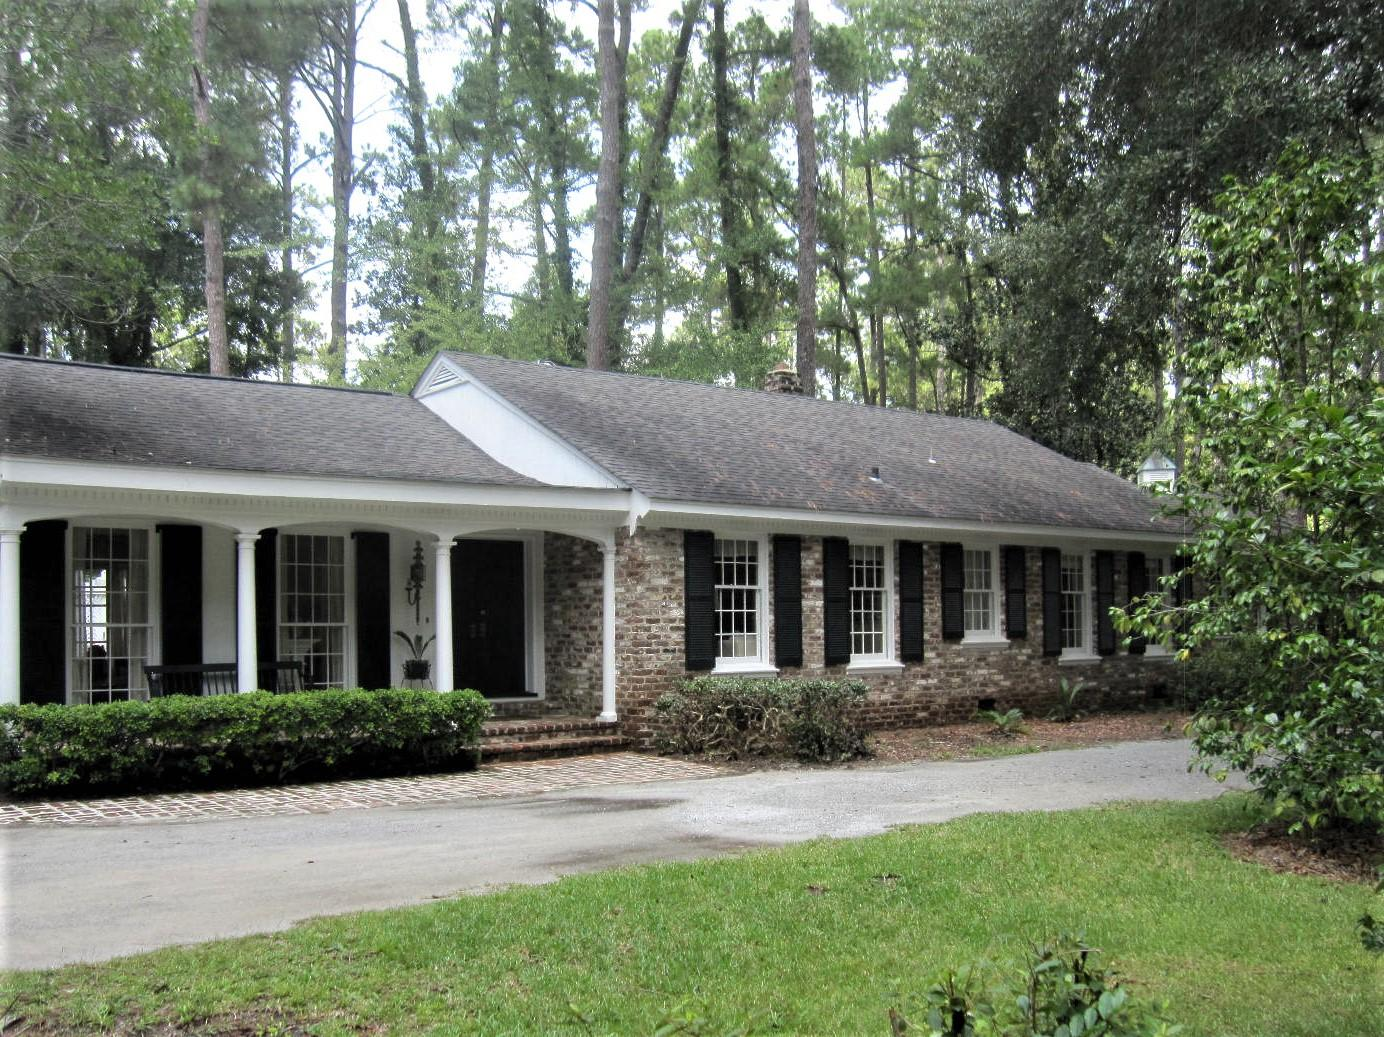 Photo of 1302 Ireland Hills Dr, Walterboro, SC 29488